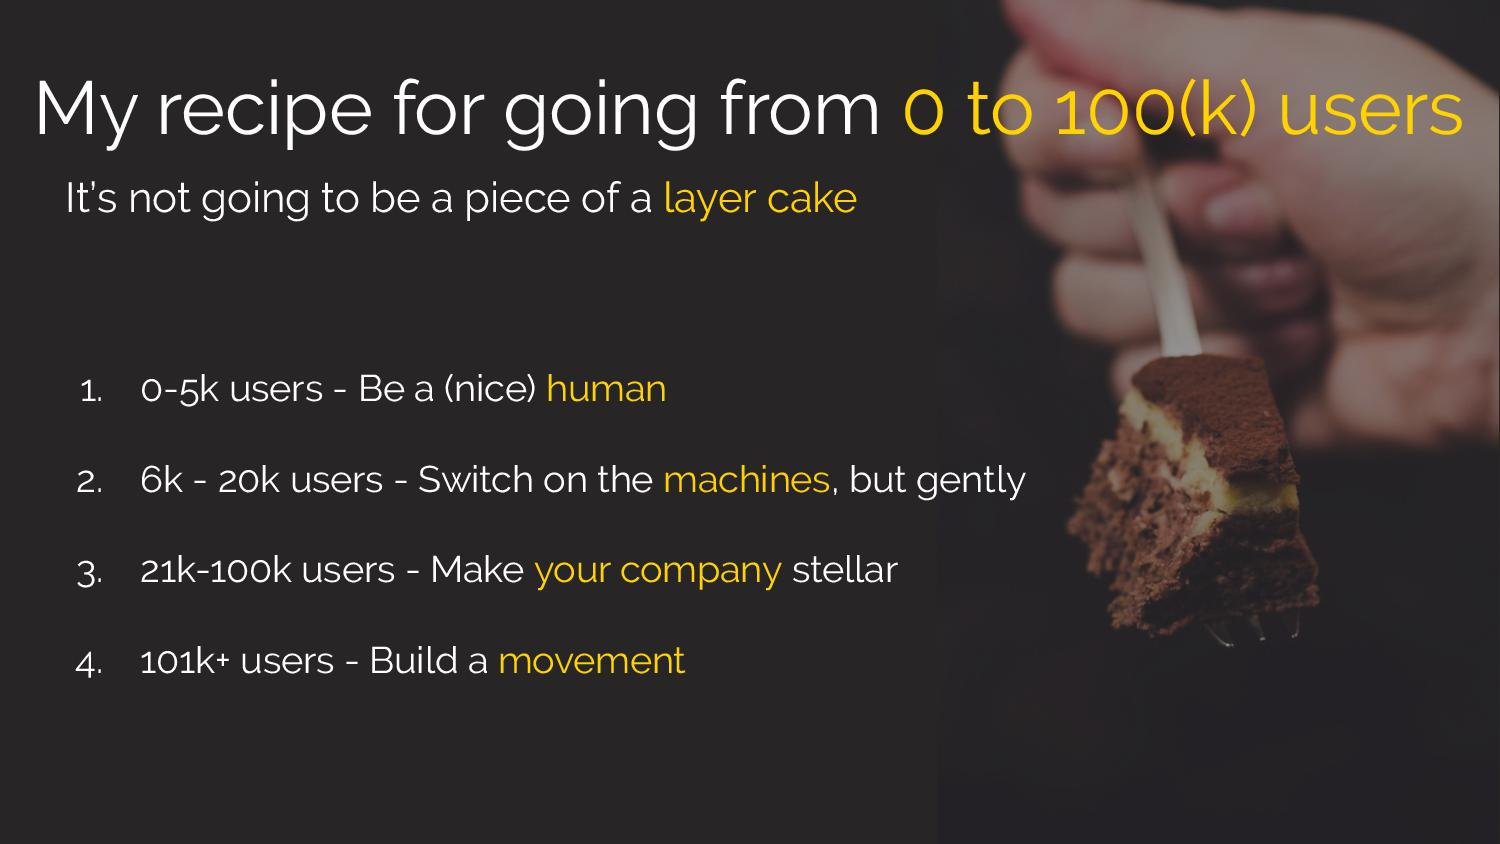 My recipe for going from 0 to 100(k) users  It's not going to be a piece of layer cake 1. 0 to 5k users - Be a nice human 2. 6k to 20k users - Switch on the machines, but gently 3. 2k to 100k users -Make your company stellar 4. 101k+ users - Build a movement